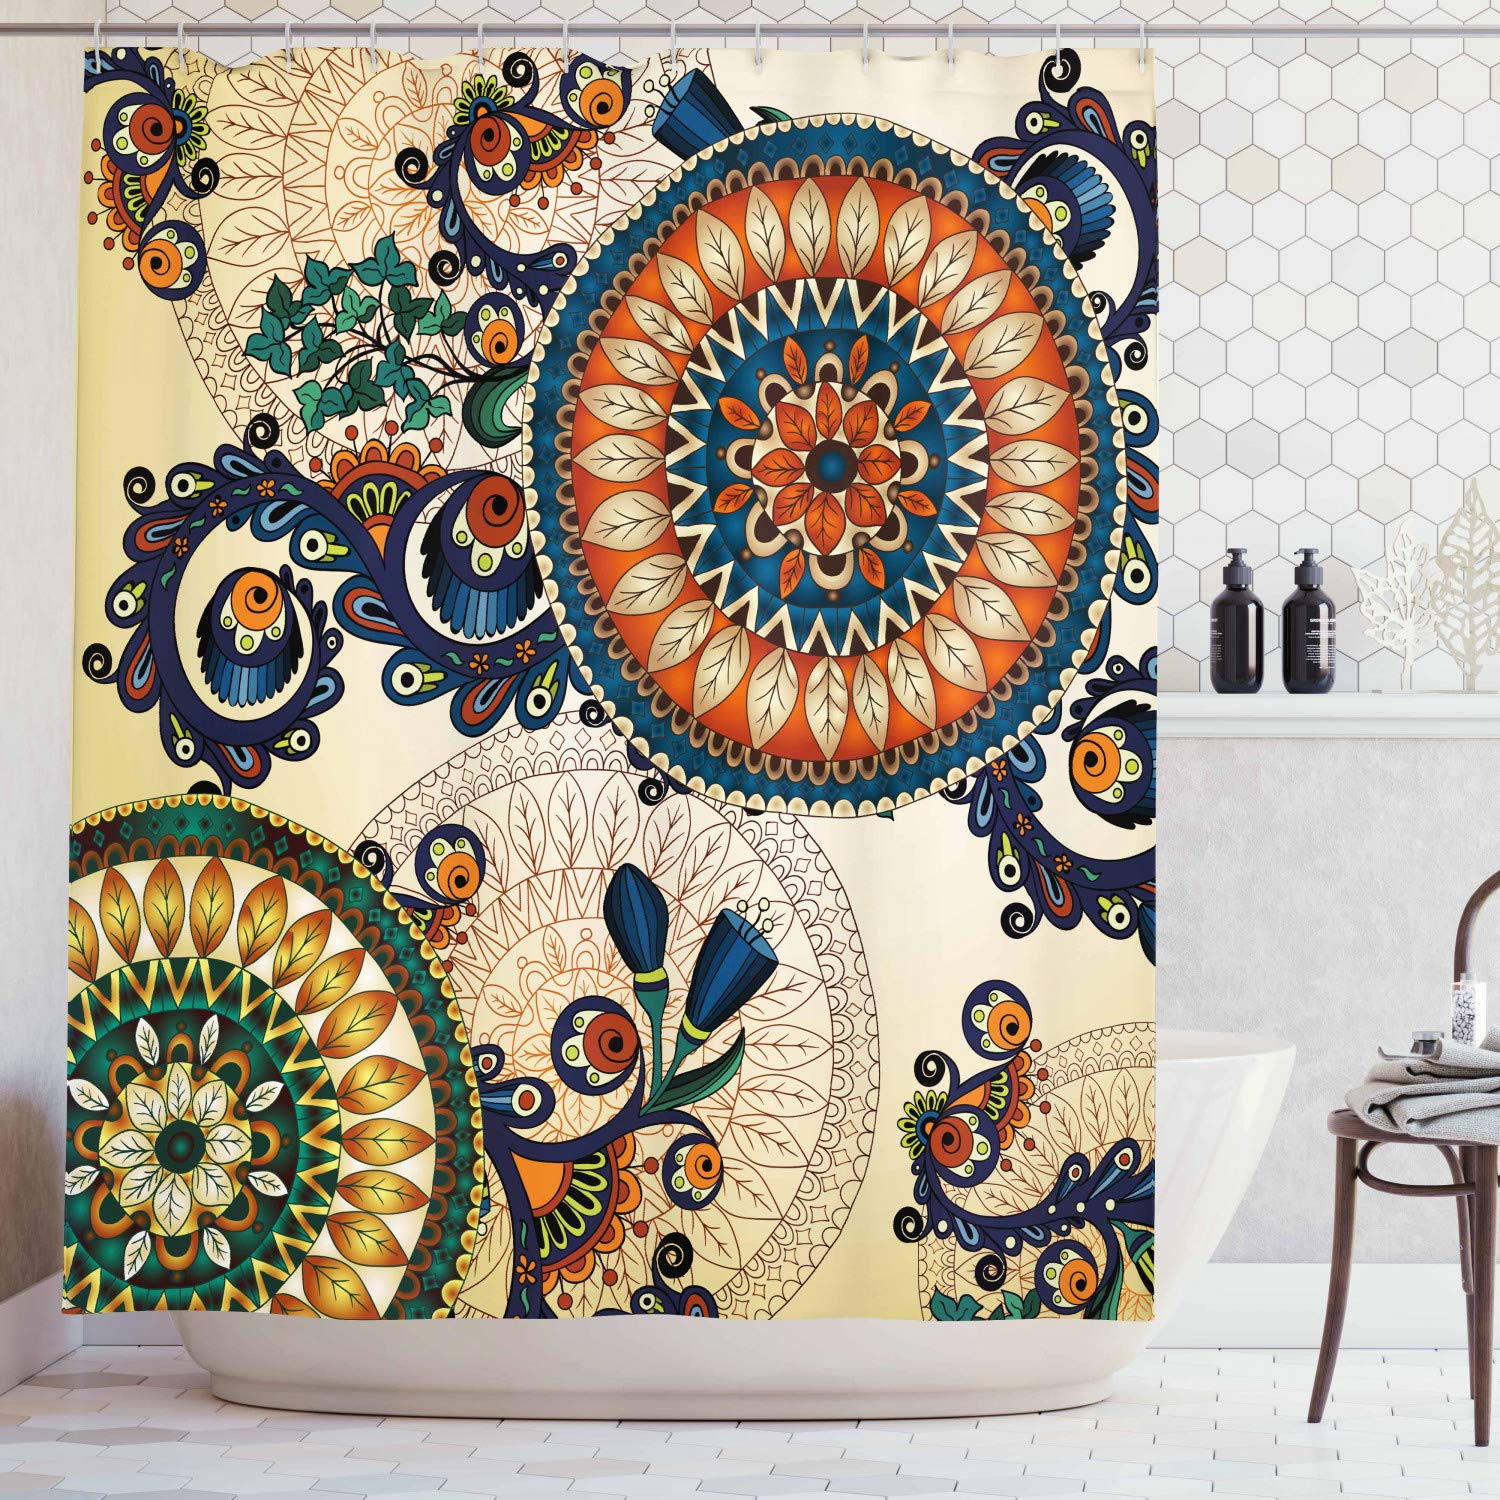 Ethnic Decor Shower Curtain by Ambesonne, Floral Arabesque Boho Pattern with Floral and Peacock Feather Figures Folk Image , Fabric Bathroom Decor Set with Hooks, 75 Inches Long, Multi